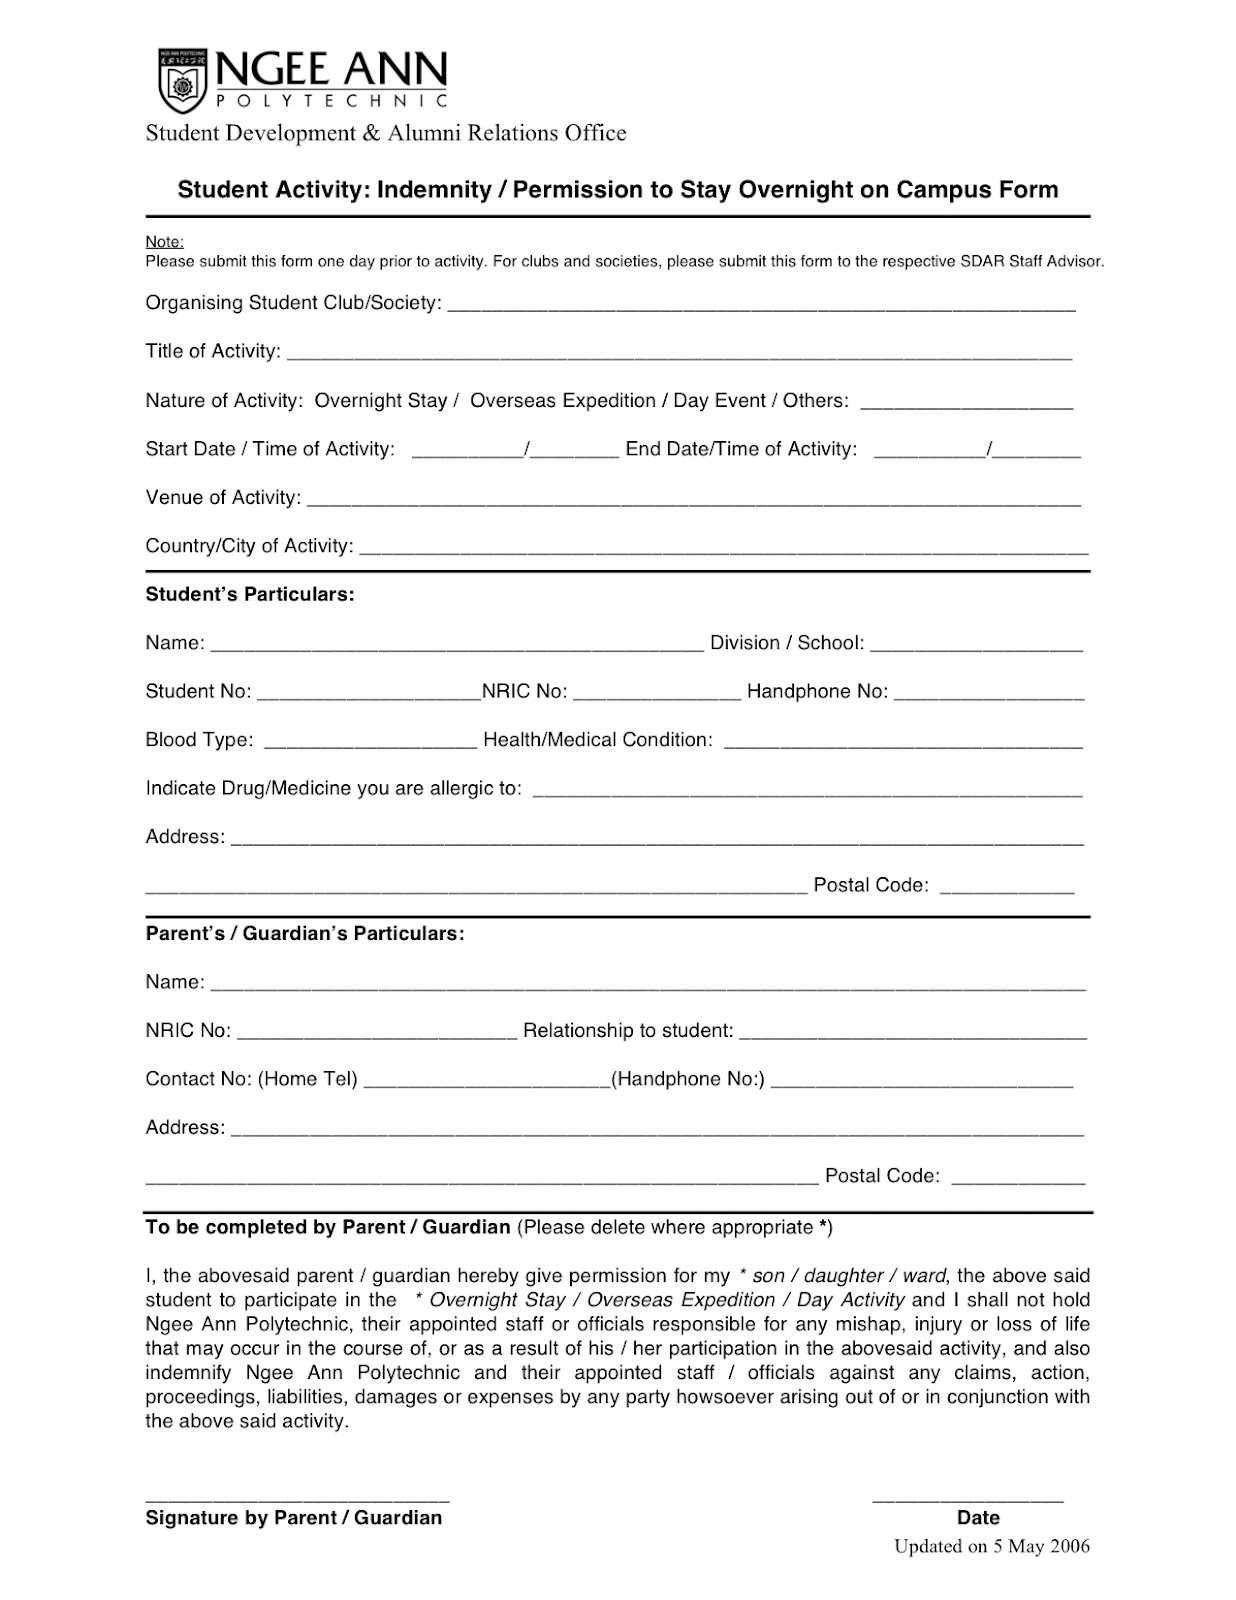 Indemnity Forms Np Archery Club Indemnity Form For Training Camp & Nus Indoor